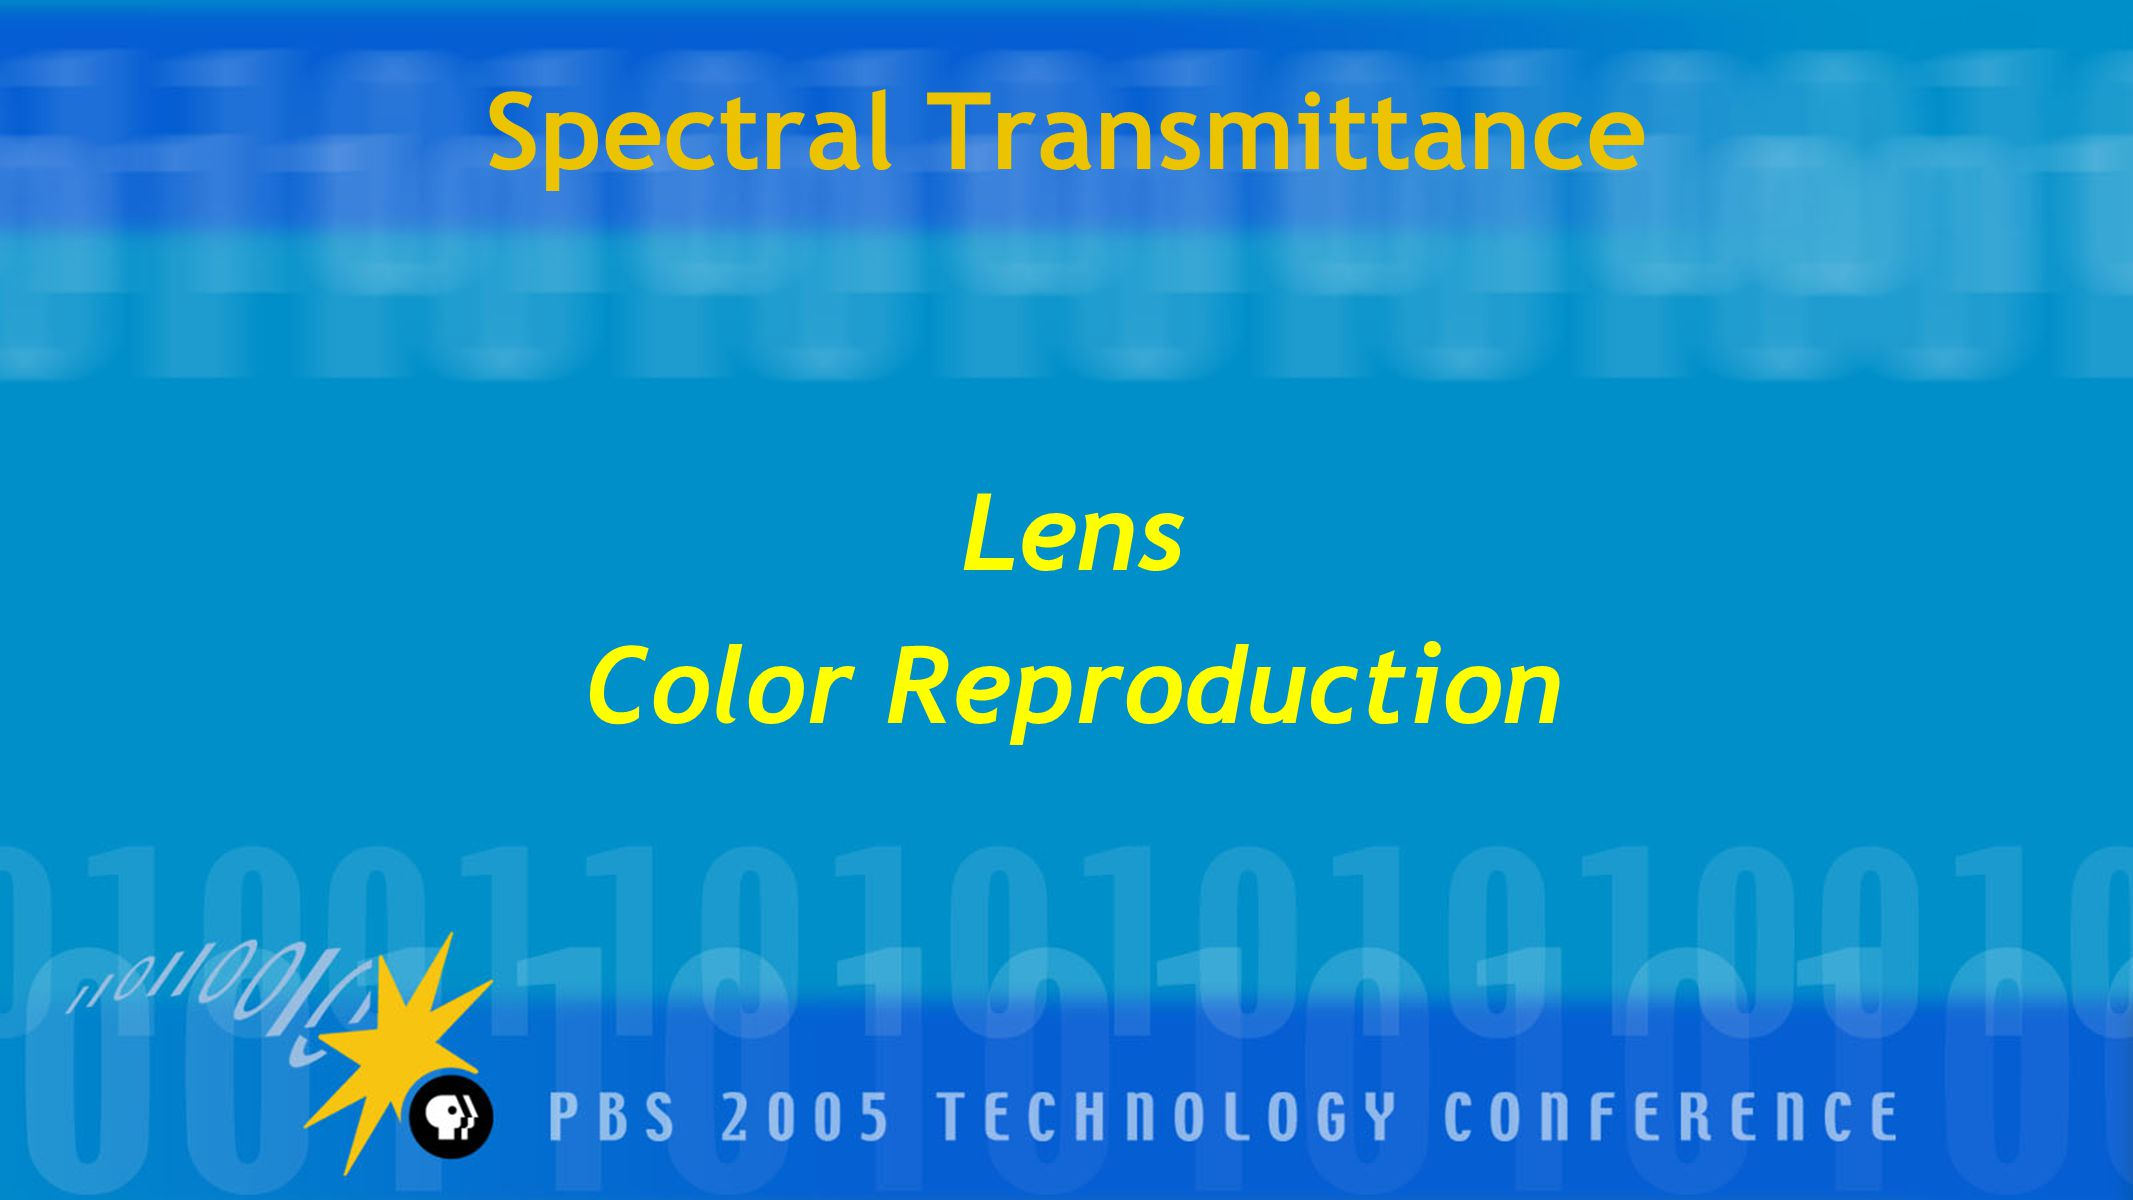 Spectral Transmittance Lens Color Reproduction